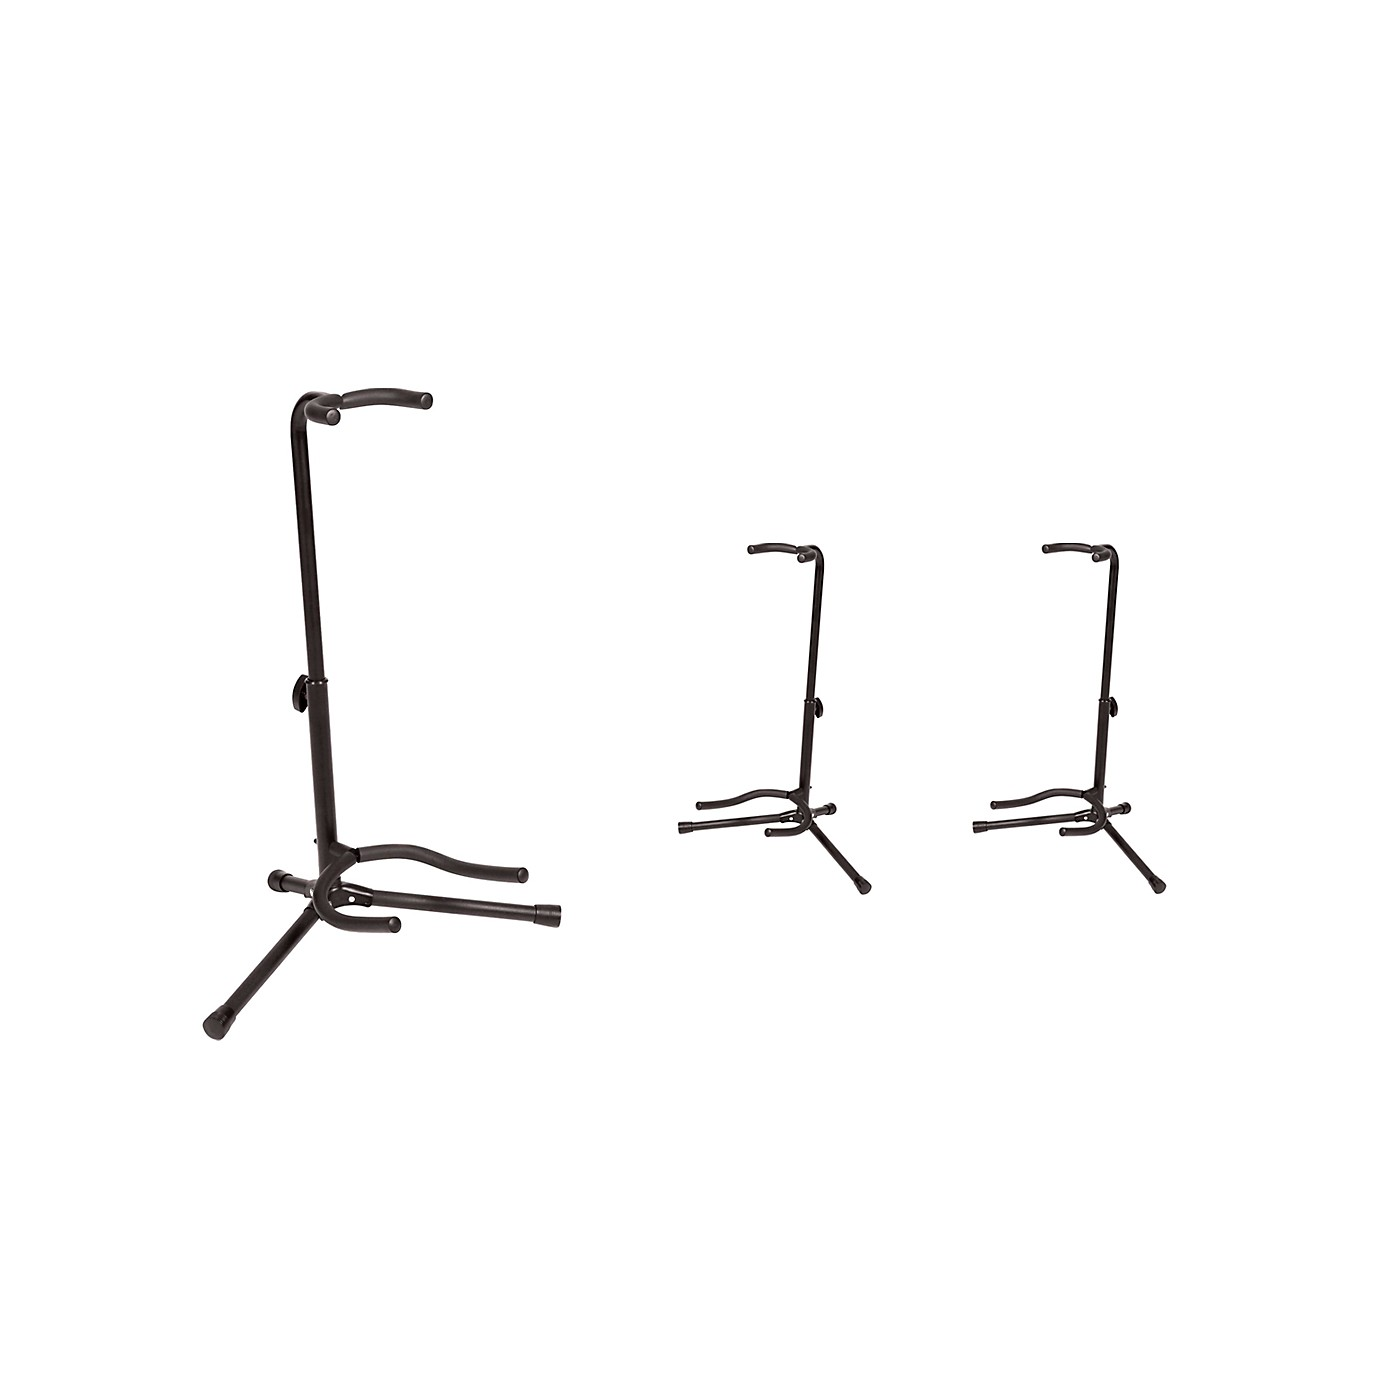 Gear One GS5 Guitar Stand 3-Pack thumbnail